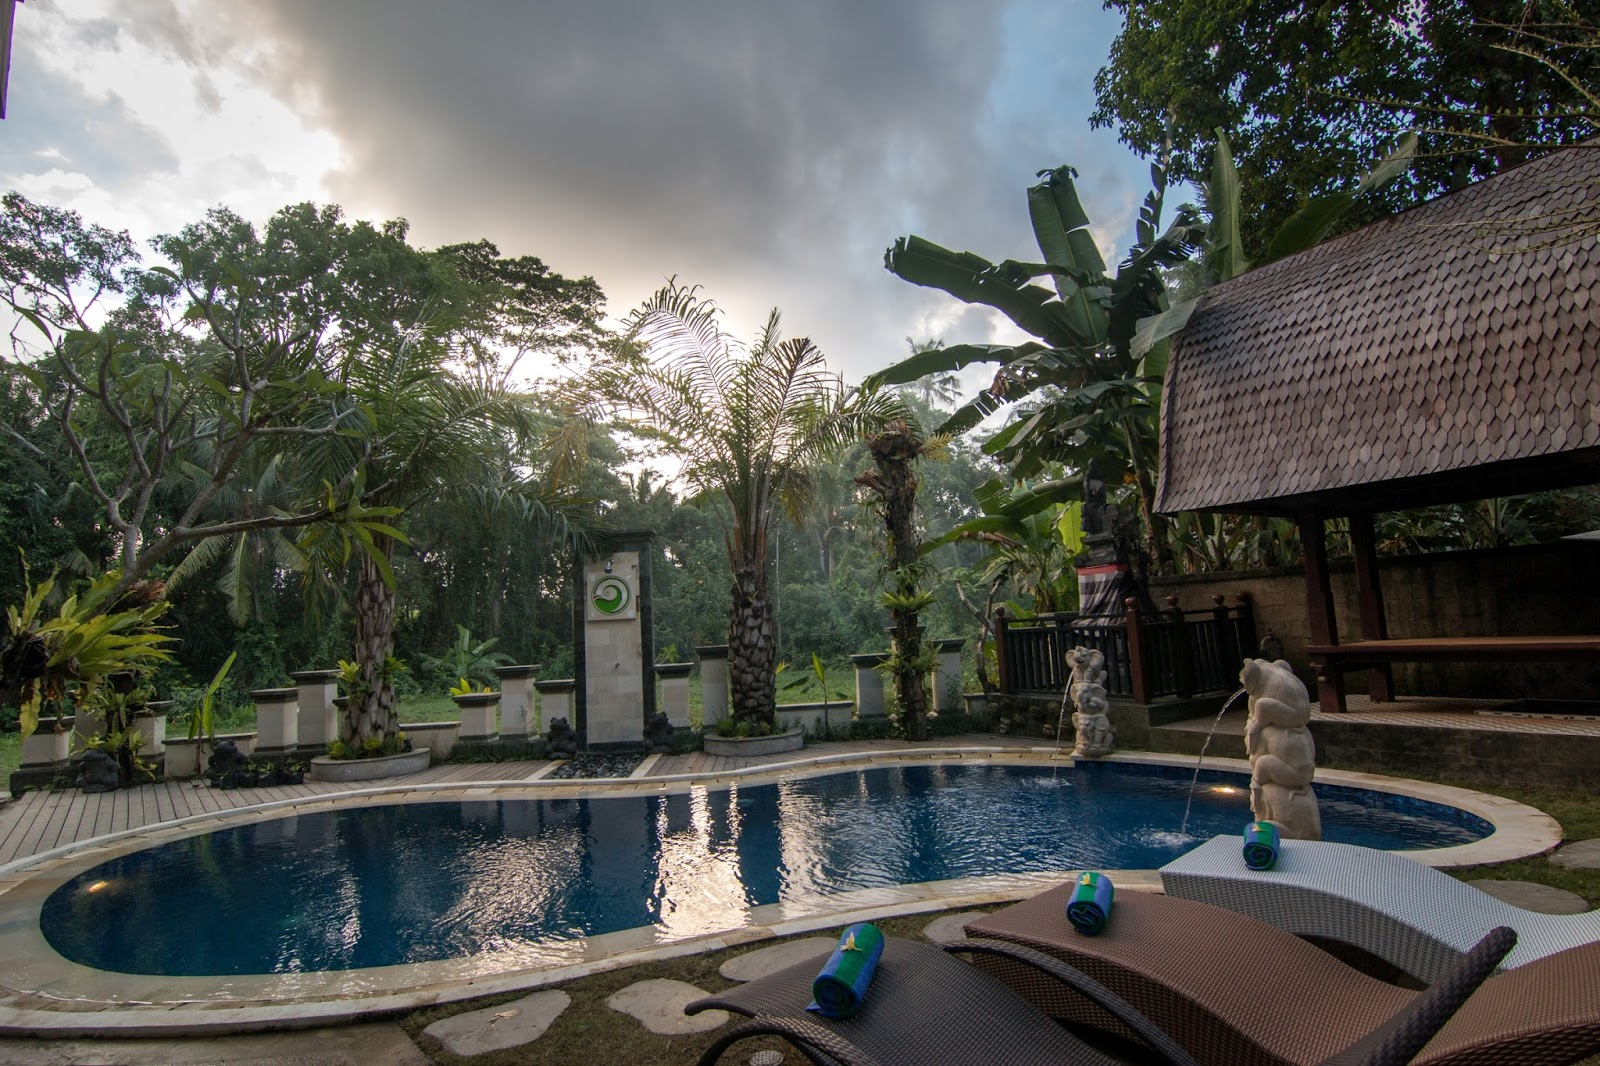 Ubud Palace Market Monkey Forest Museums And Art Galleries Major Temples Whitewater Rafting Jungle Rice Paddy Trekking Elephant Safaris